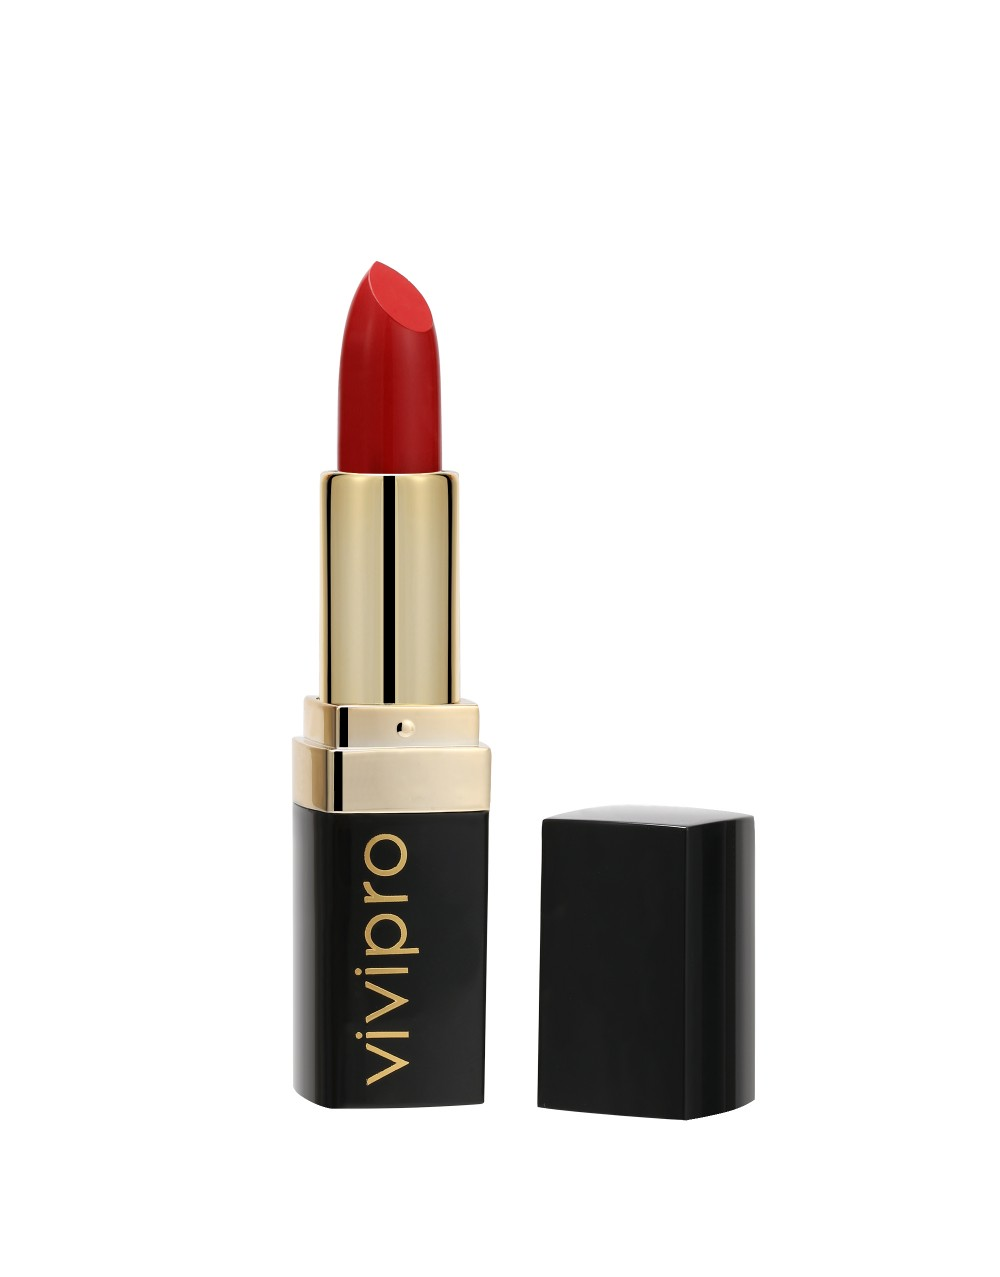 VIVIpro Sexy long lasting waterproof private label matte cosmetics lipstick